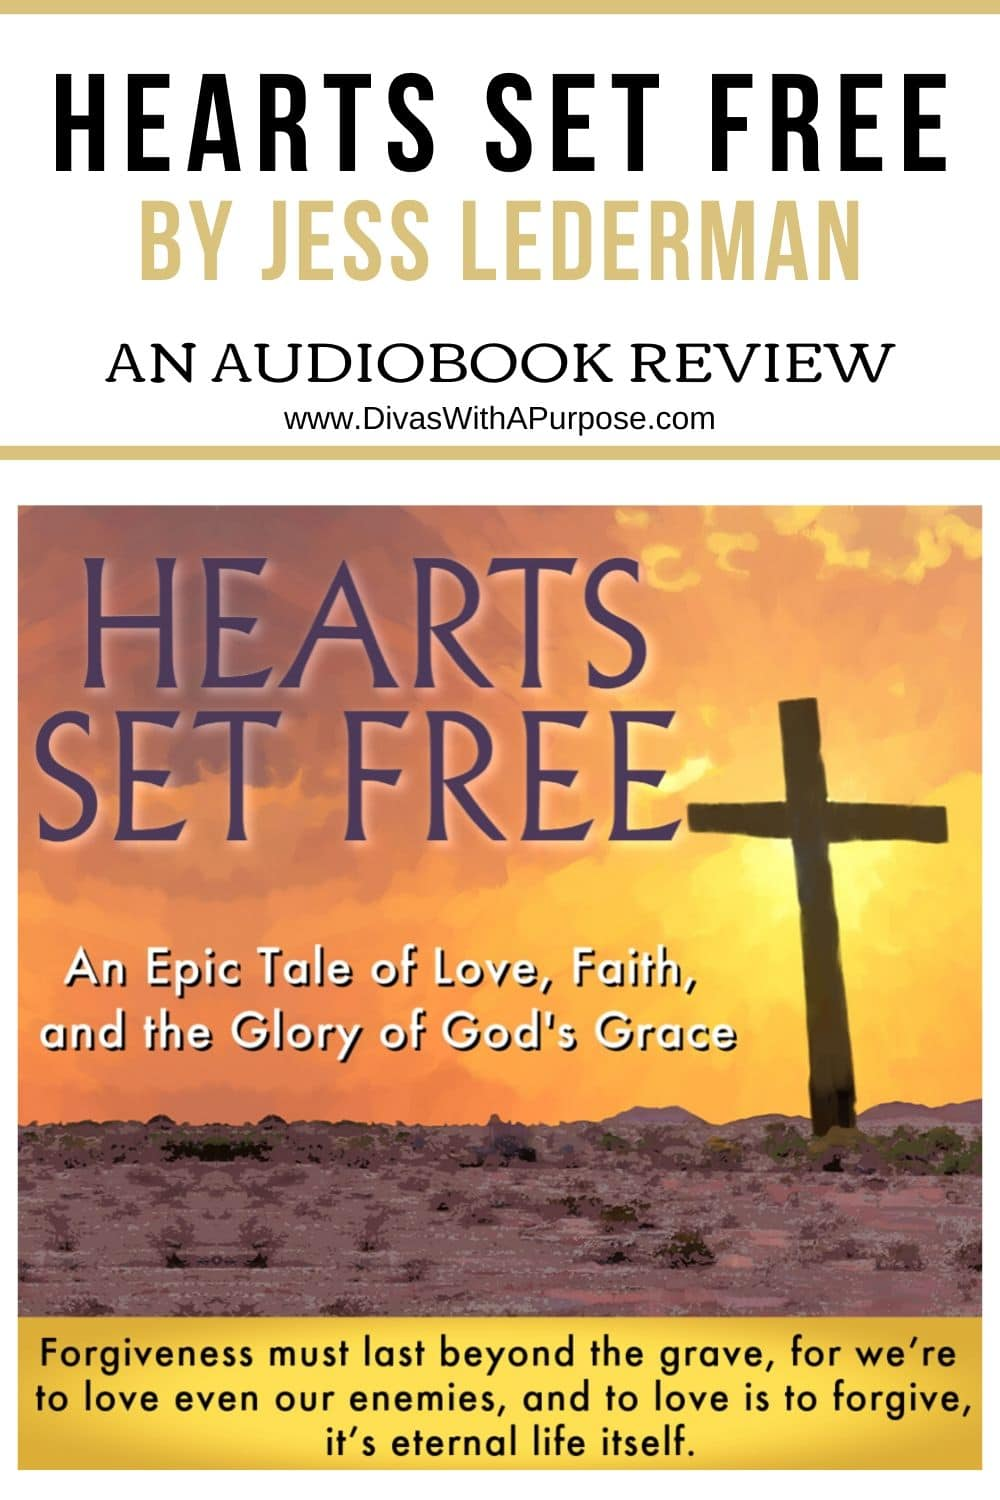 An audiobook review of Hearts Set Free by Jess Lederman